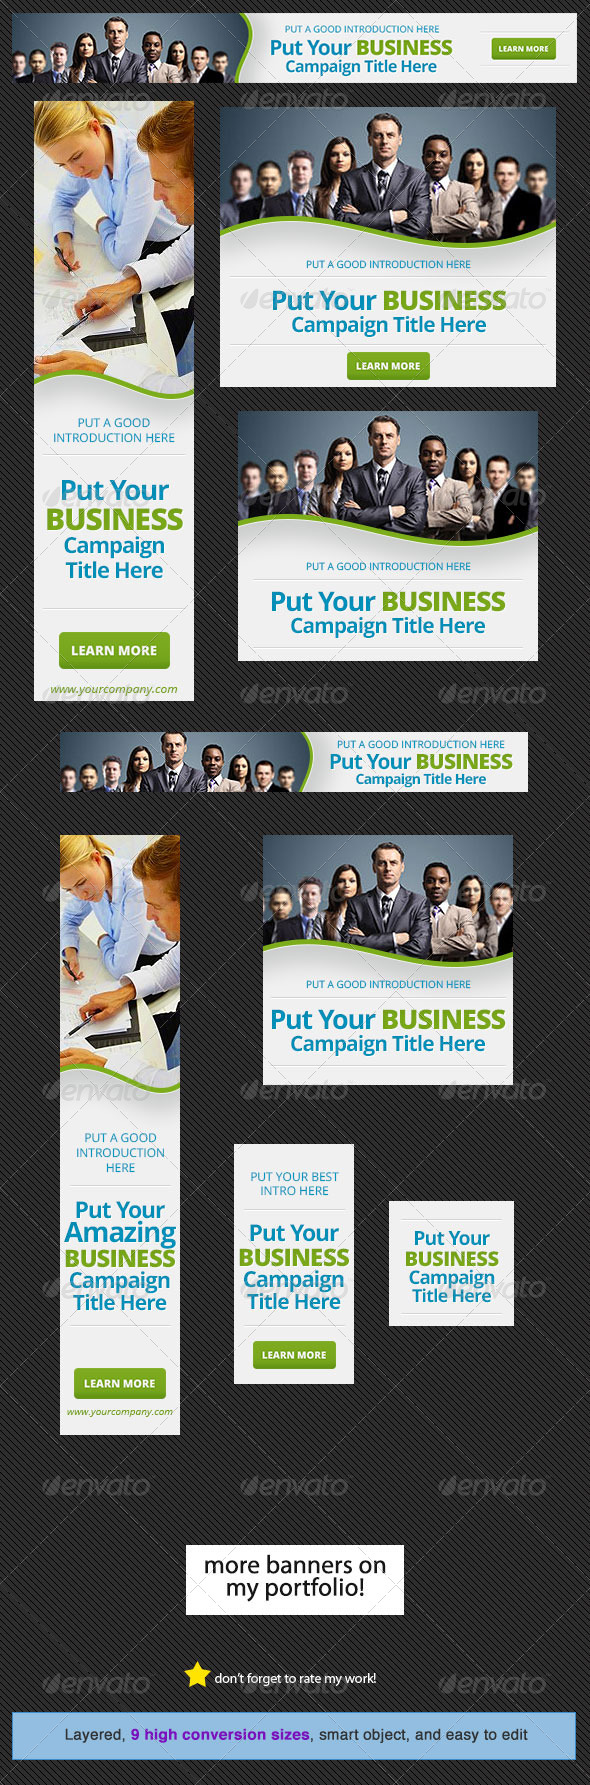 Corporate Web Banner Design Template 15 - Banners & Ads Web Elements